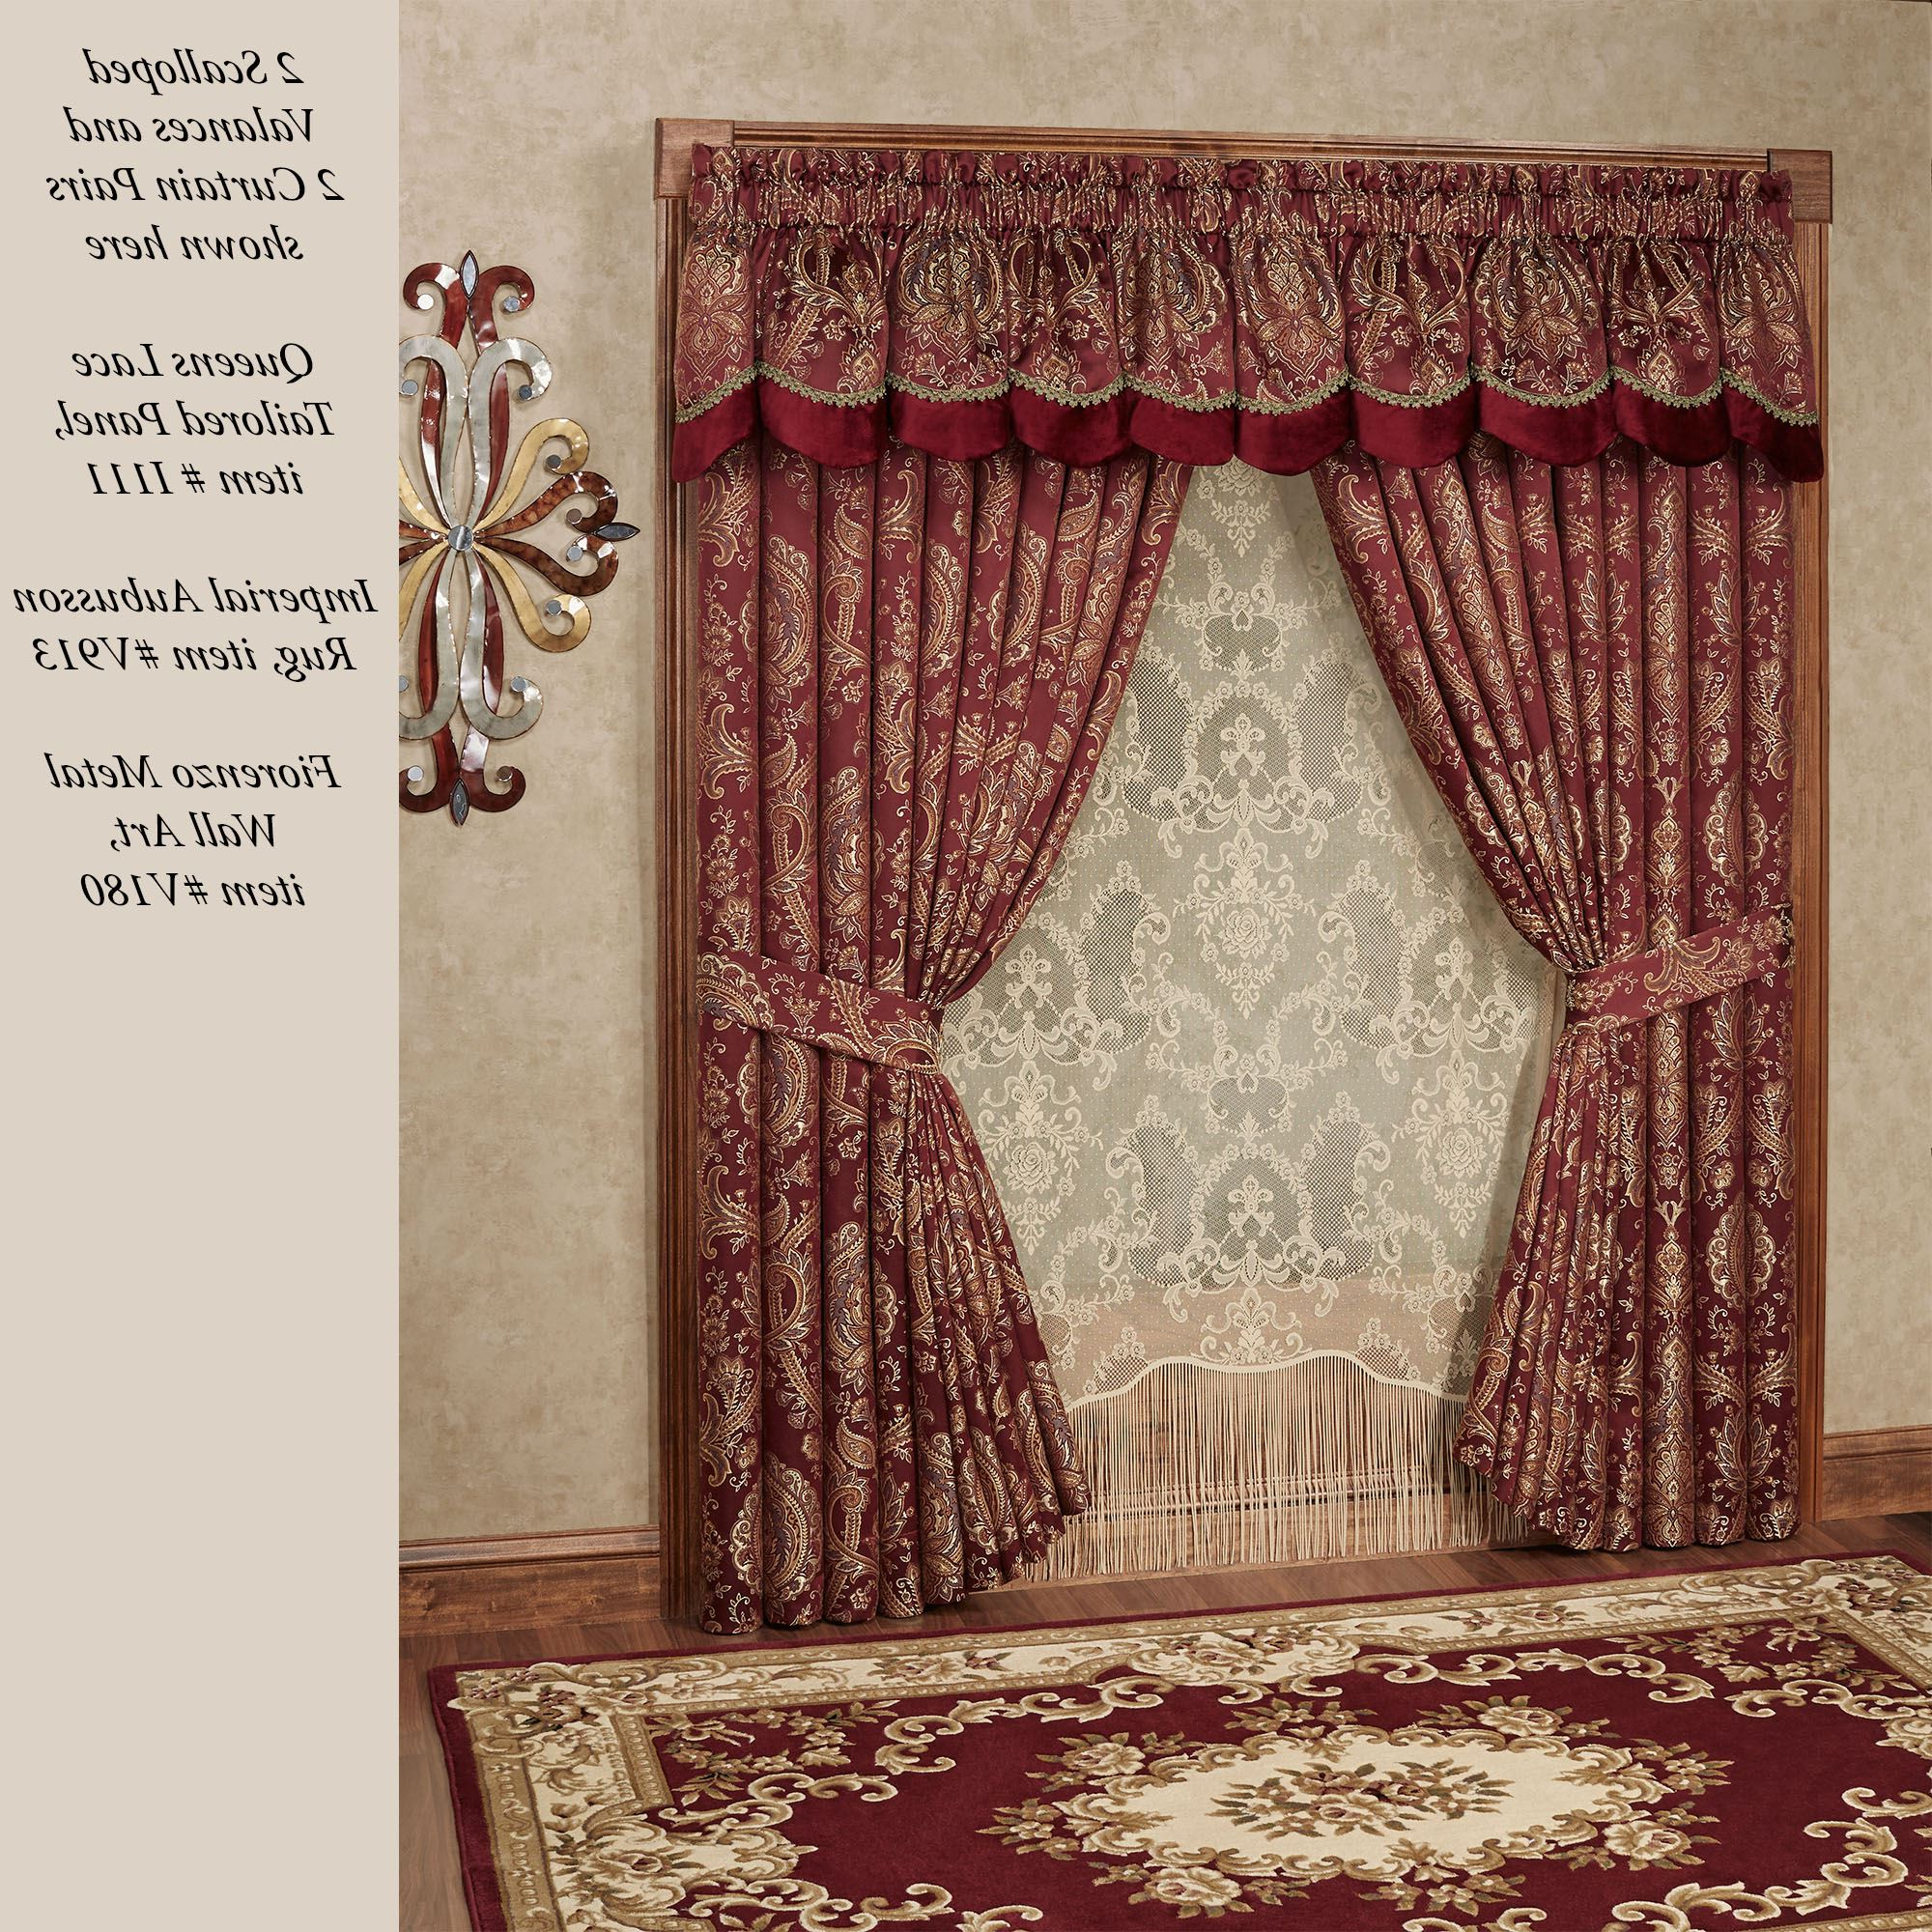 Courtland Cordovan Medallion Scalloped Valance Window Treatment Throughout Most Current Imperial Flower Jacquard Tier And Valance Kitchen Curtain Sets (View 18 of 20)